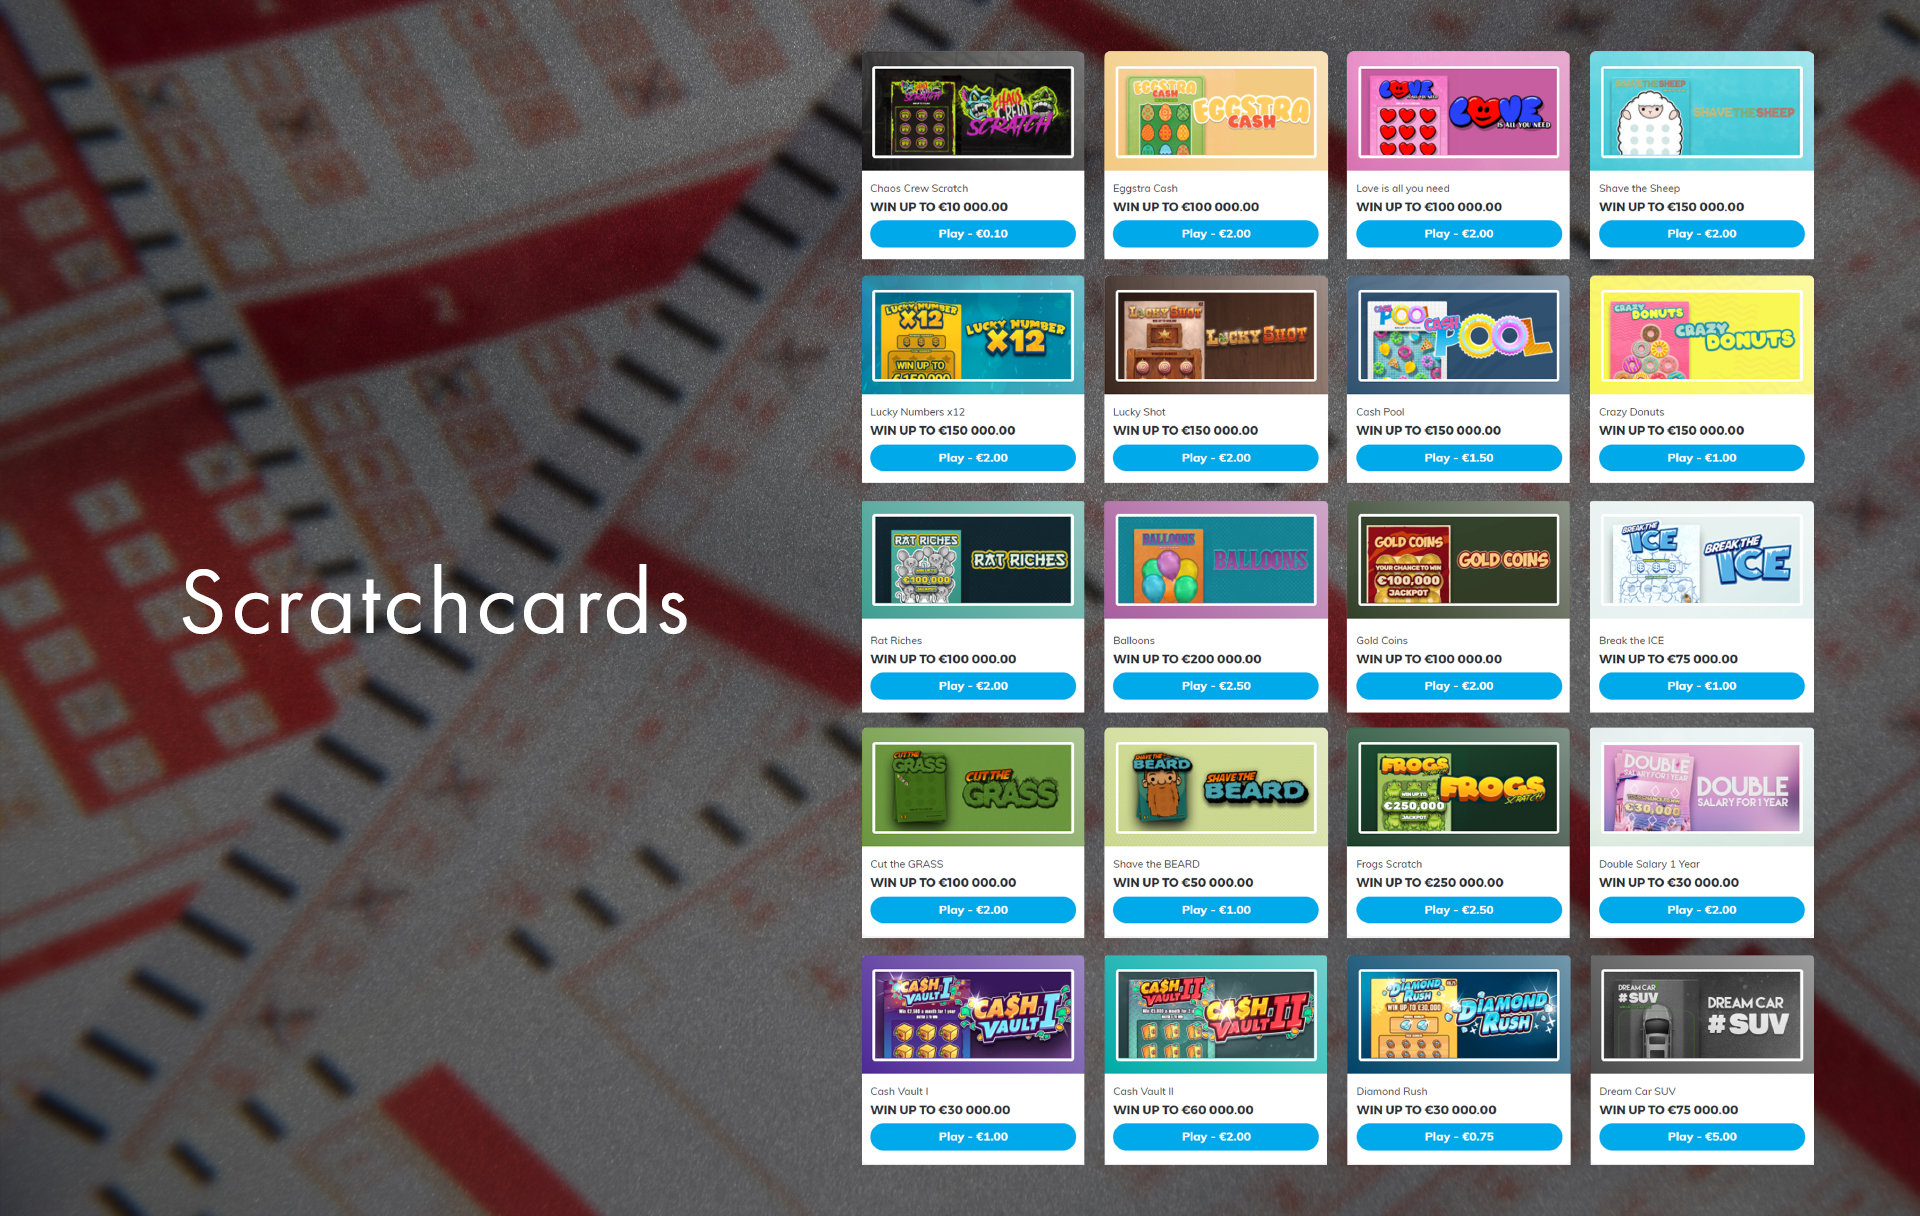 In the Scratchcards section, you can find more than 40 types of instant draws.